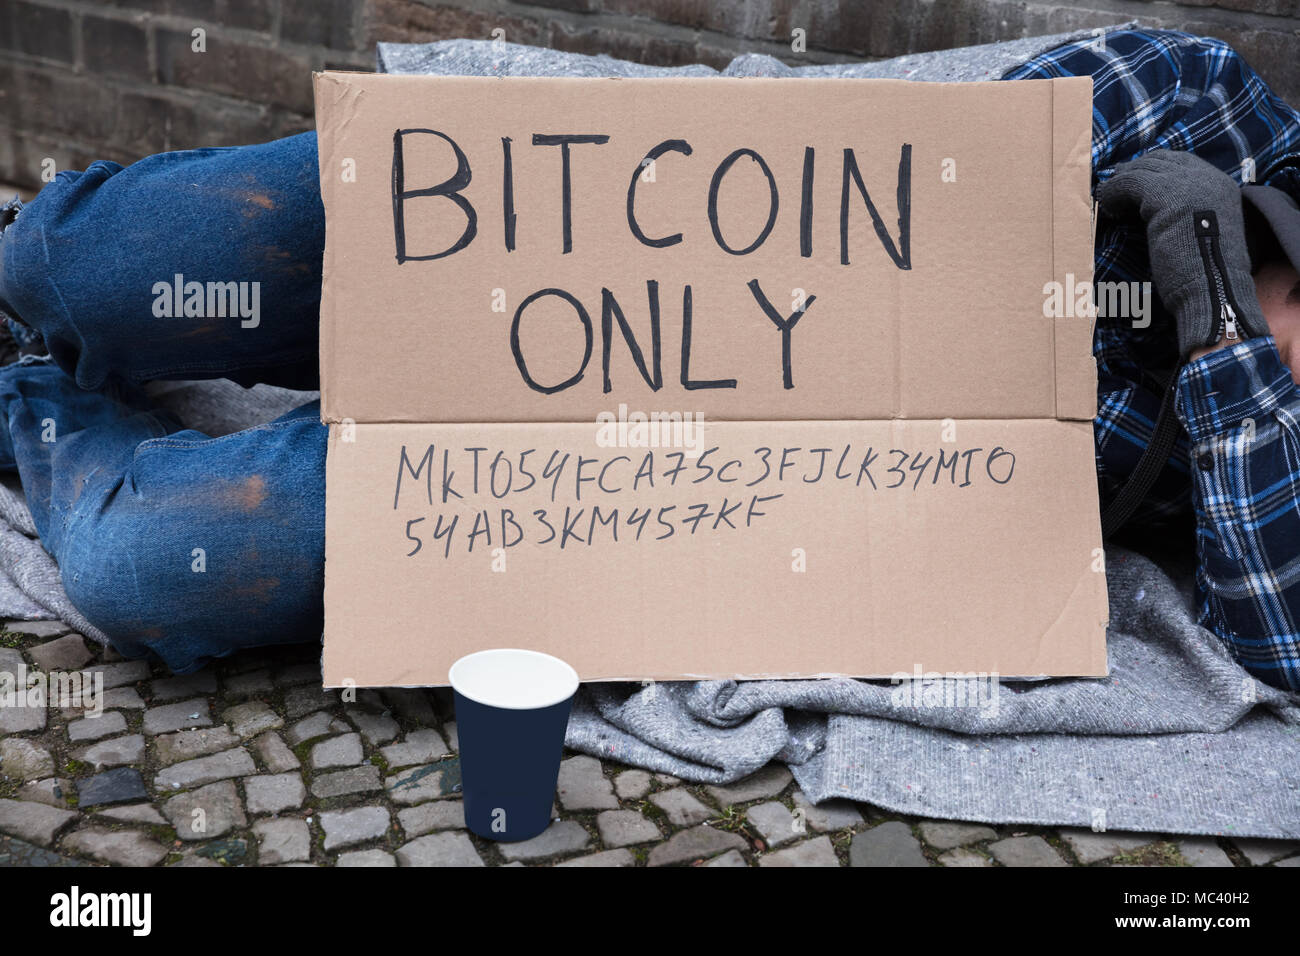 Beggar Sleeping On Street With Bitcoin Only Text On Cardboard Stock Photo